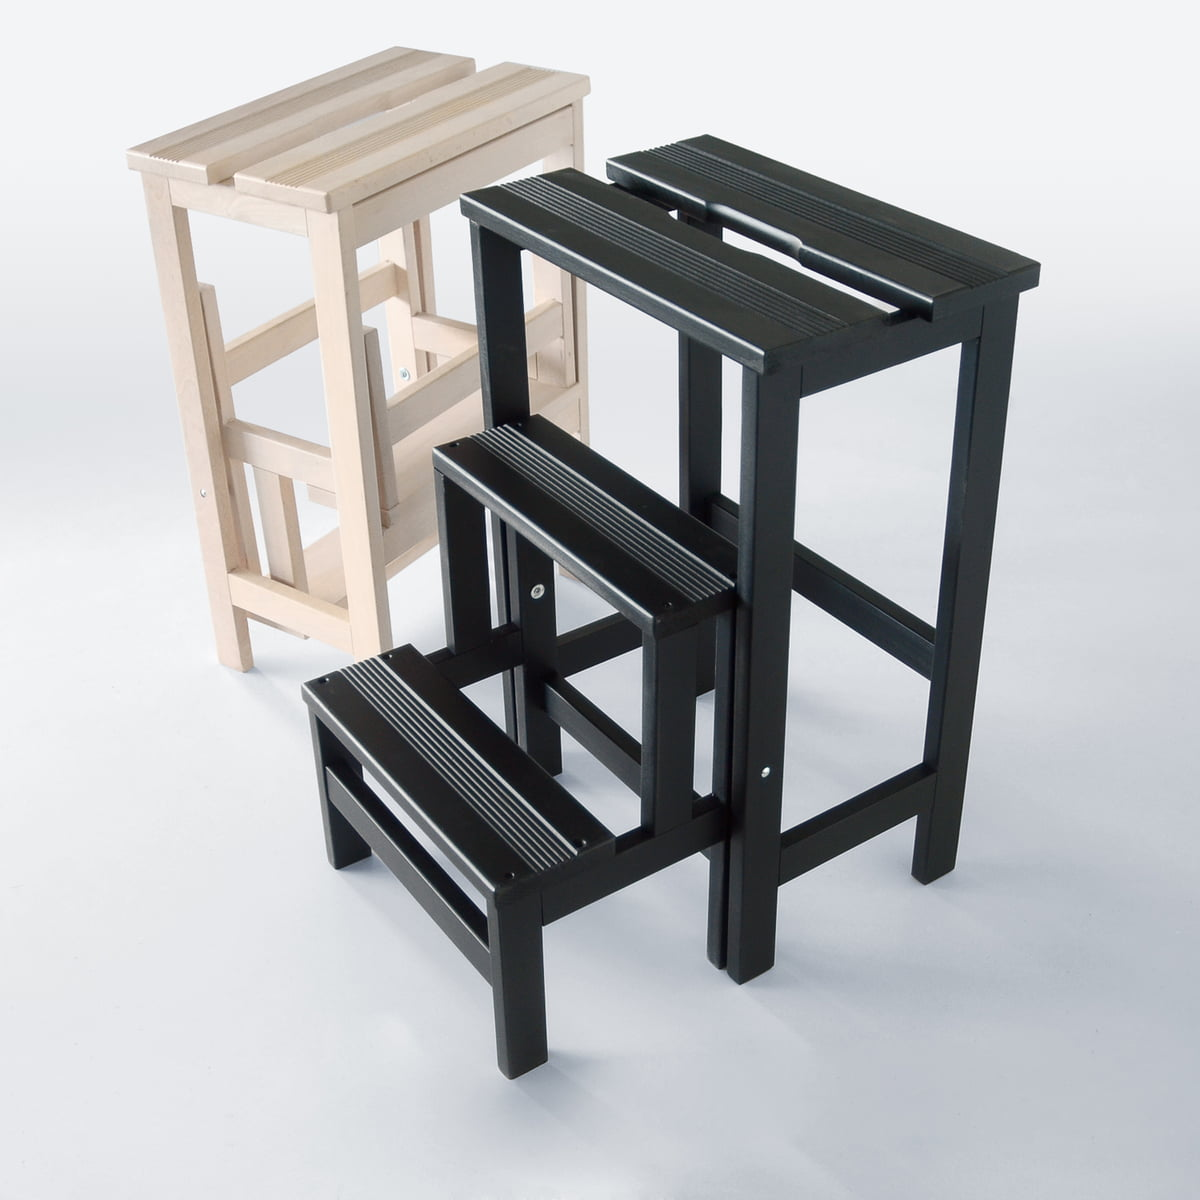 hardware ace folding stool stools and family step jsp big steel index kitchen at two